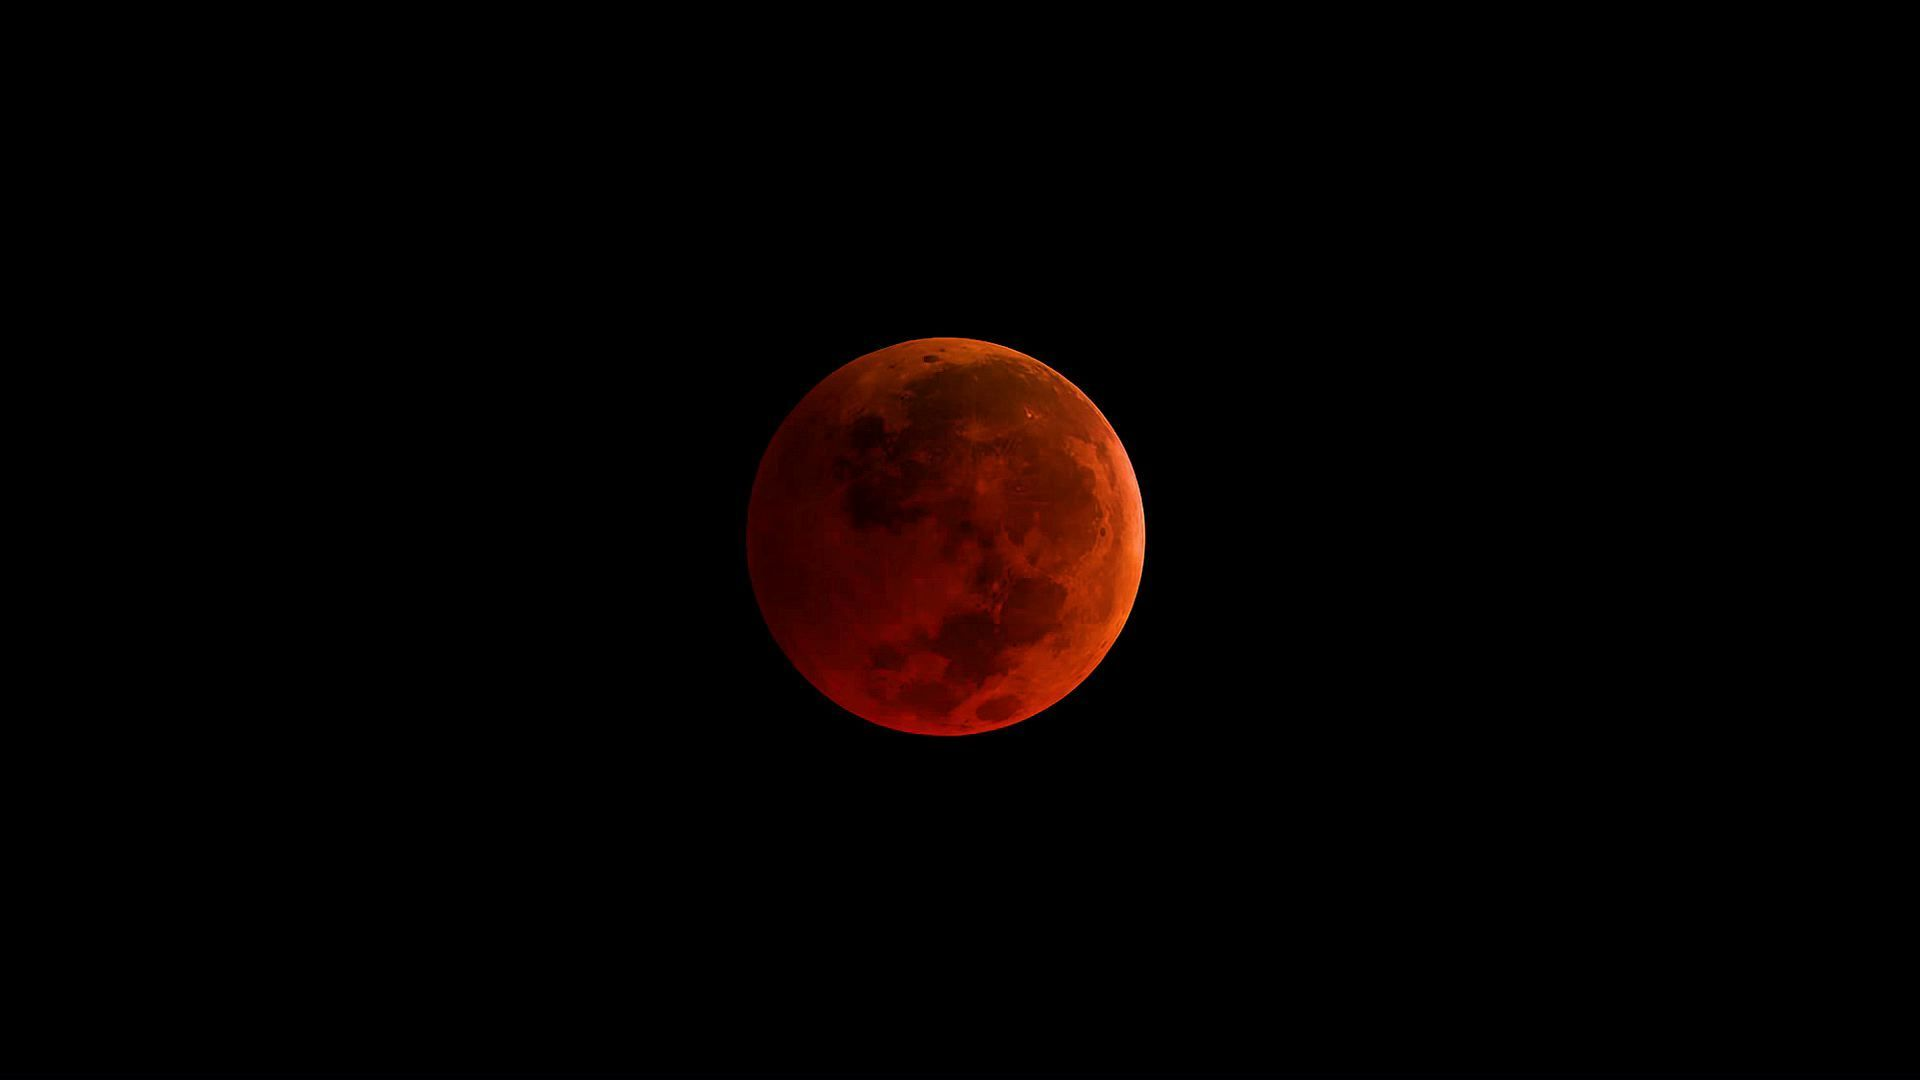 Blood Moon Wallpapers   Top Blood Moon Backgrounds 1920x1080